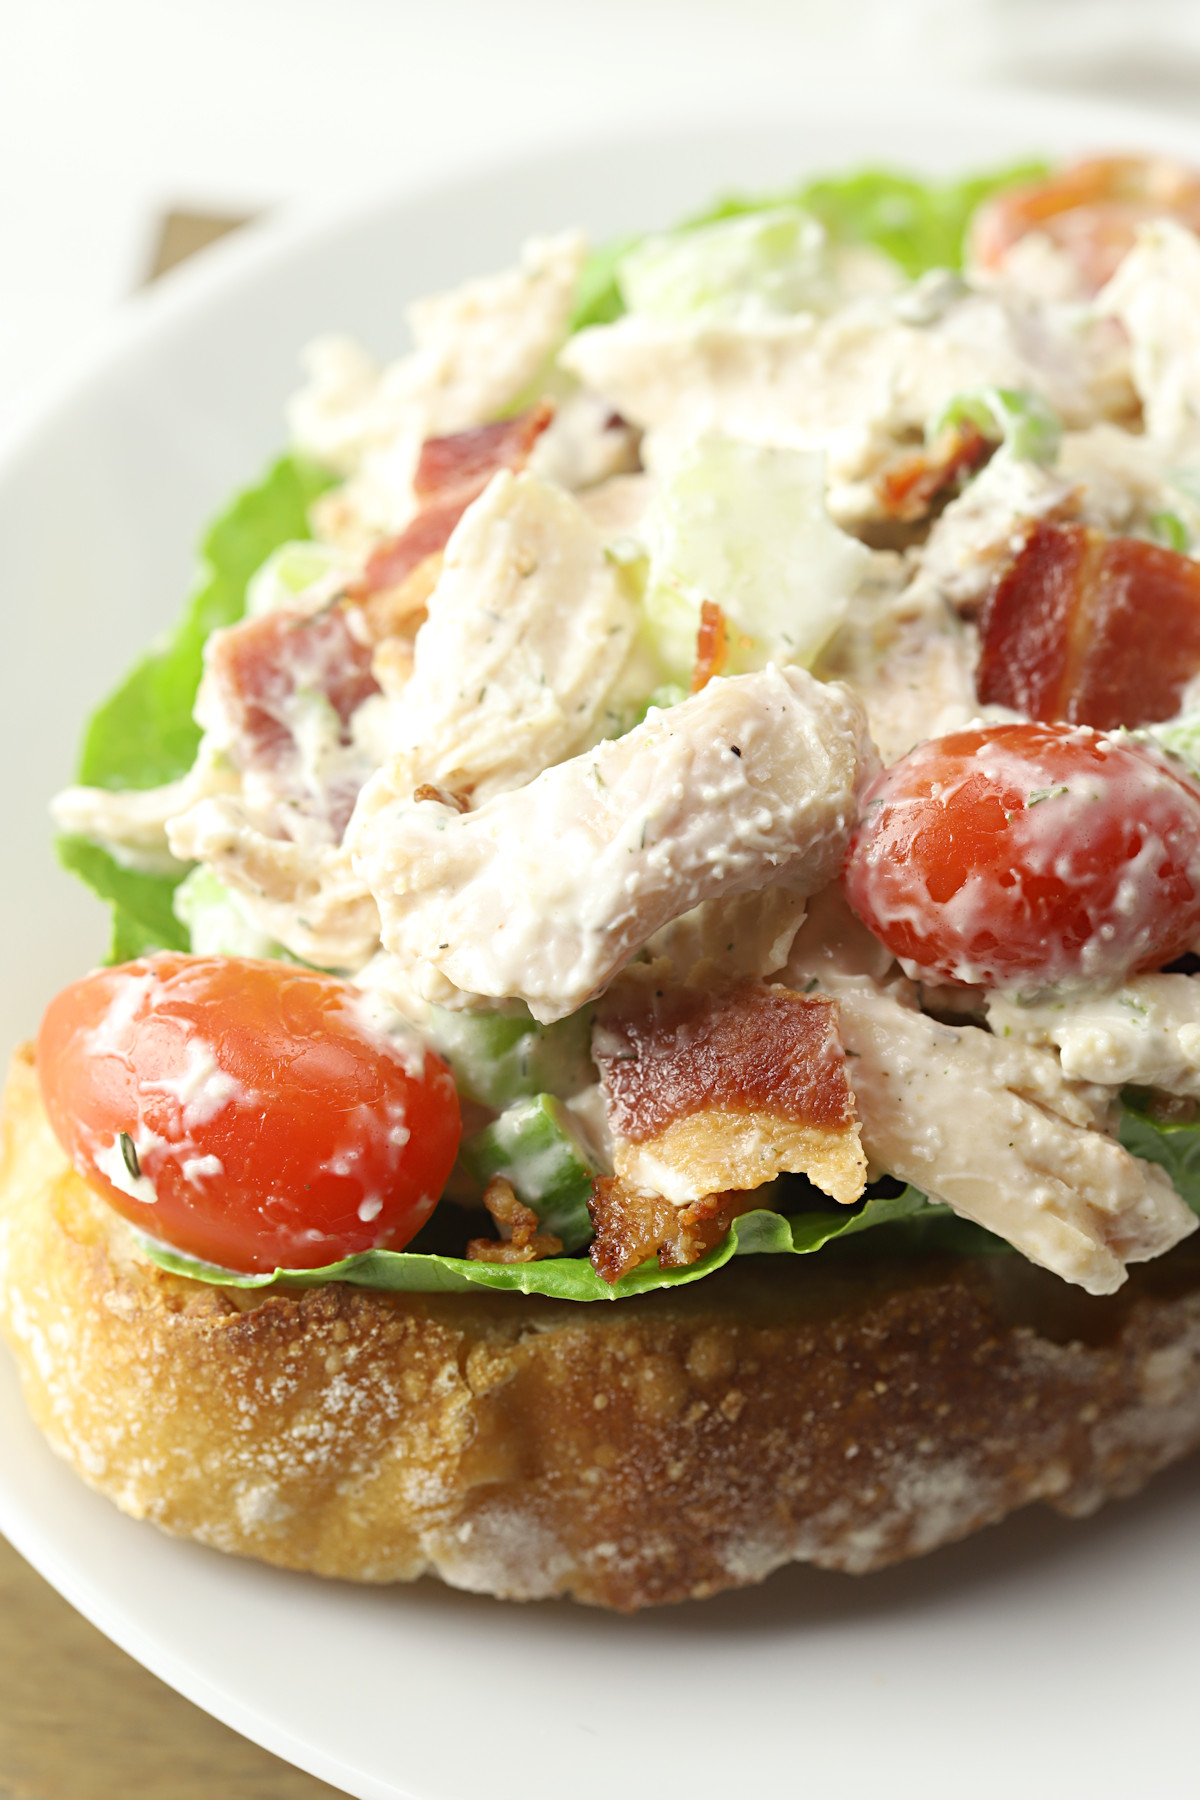 Tomatoes and bacon in a chicken salad.